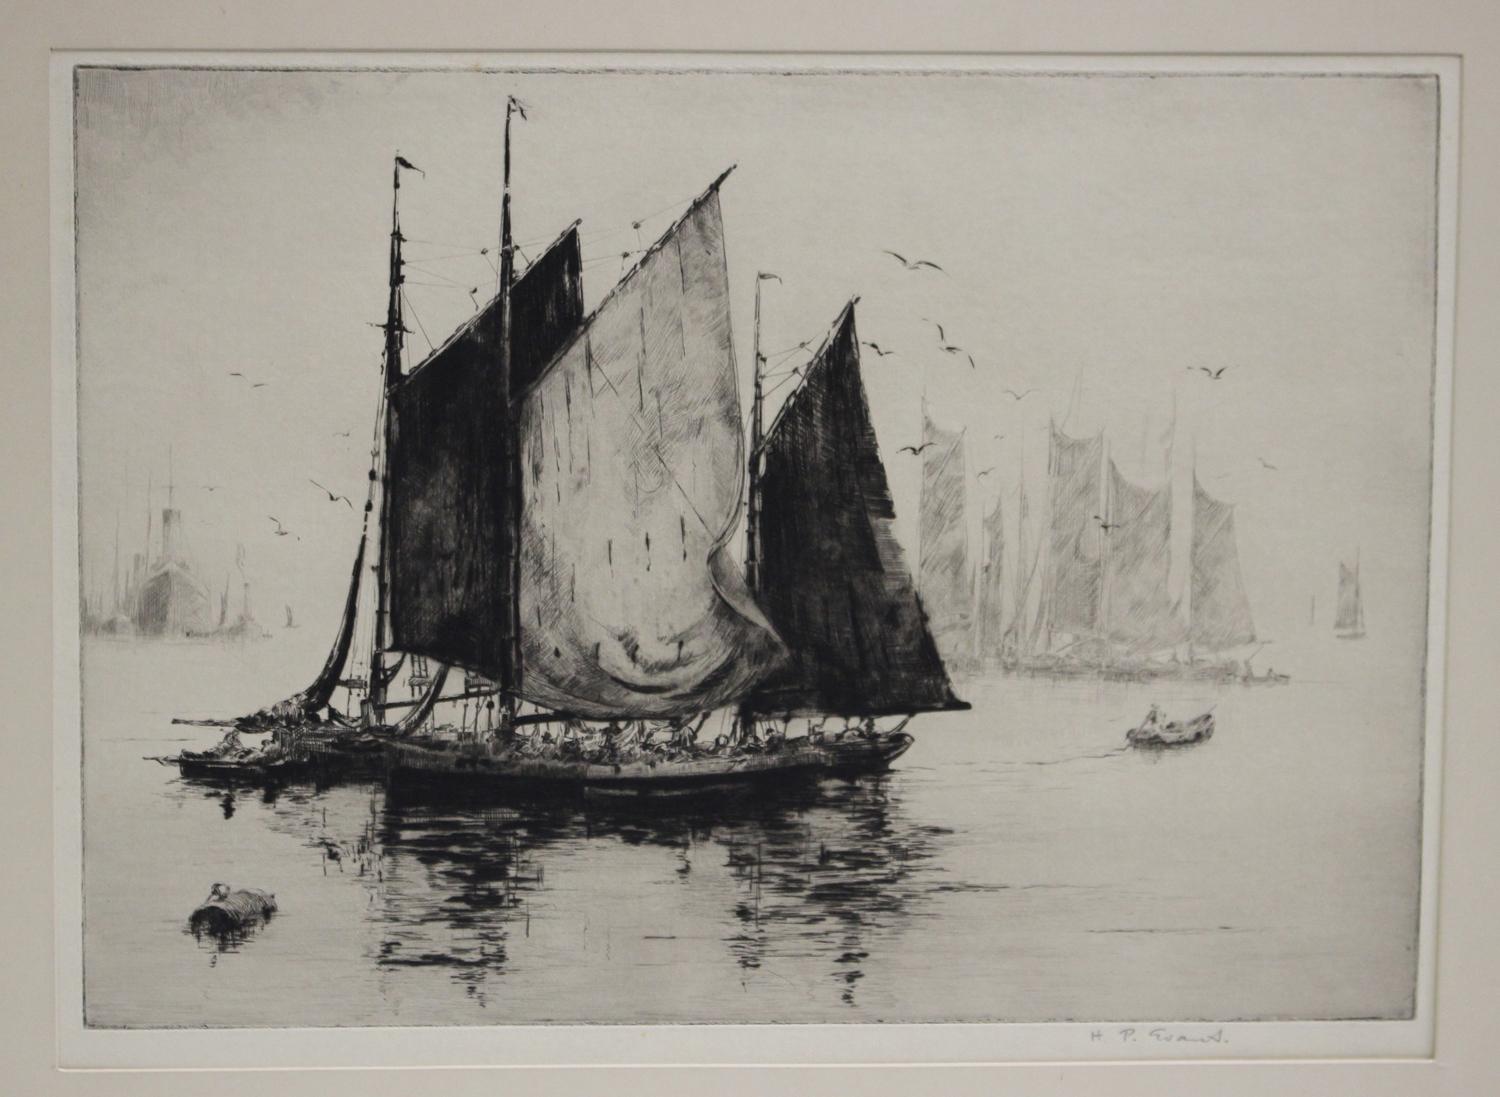 Joseph Cook Sister Ships 20th Century Drypoint